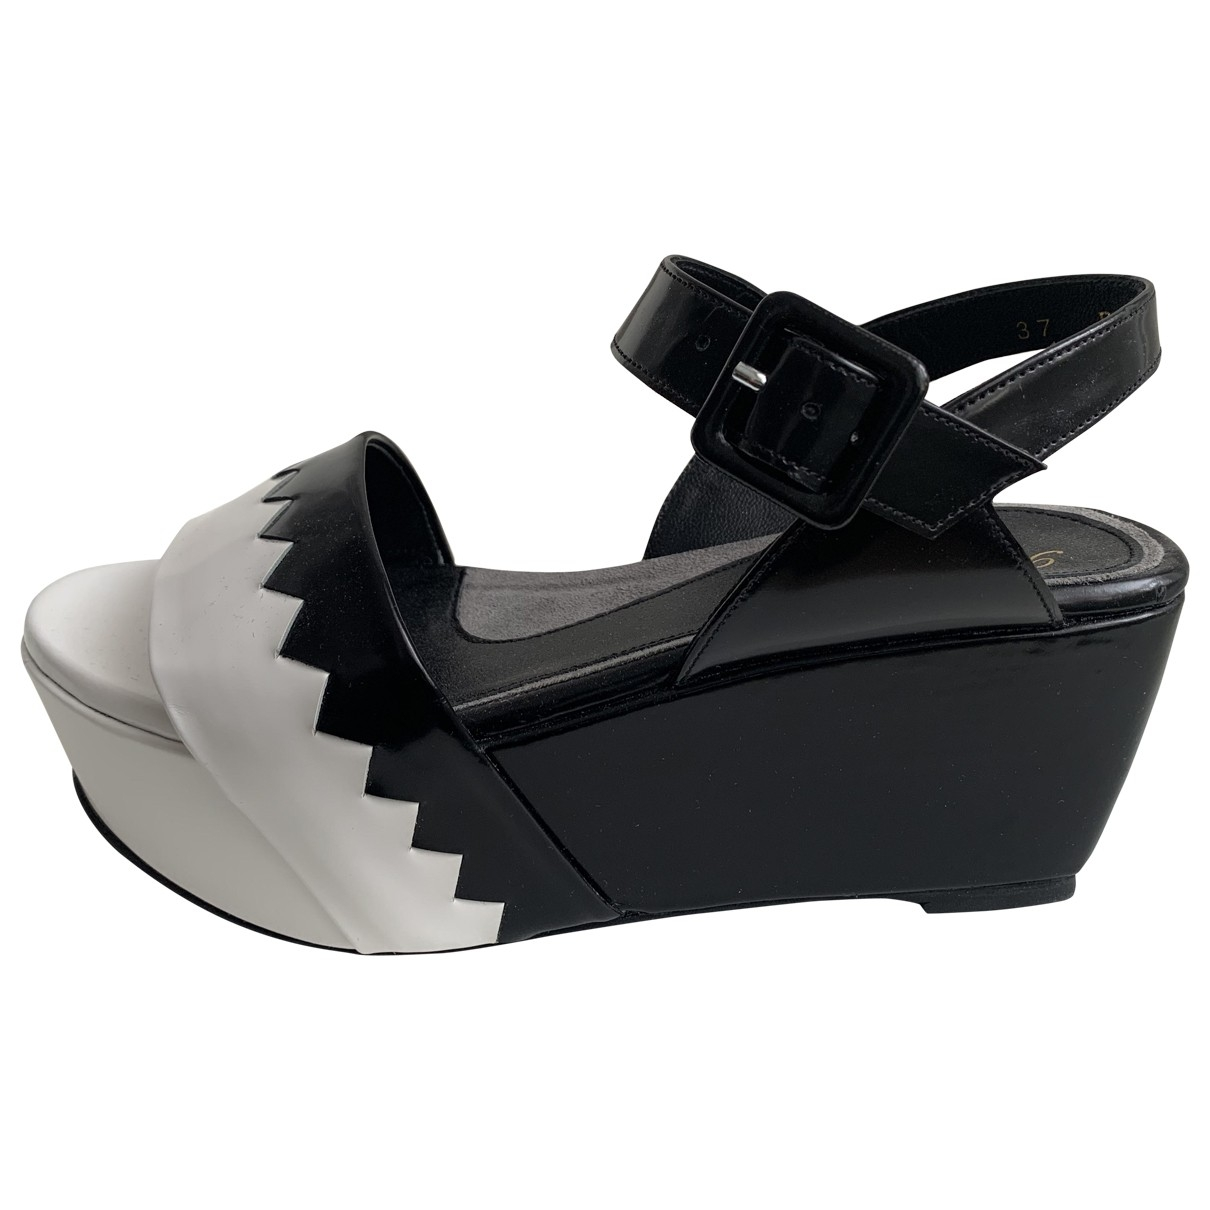 Robert Clergerie \N Black Leather Sandals for Women 37 EU